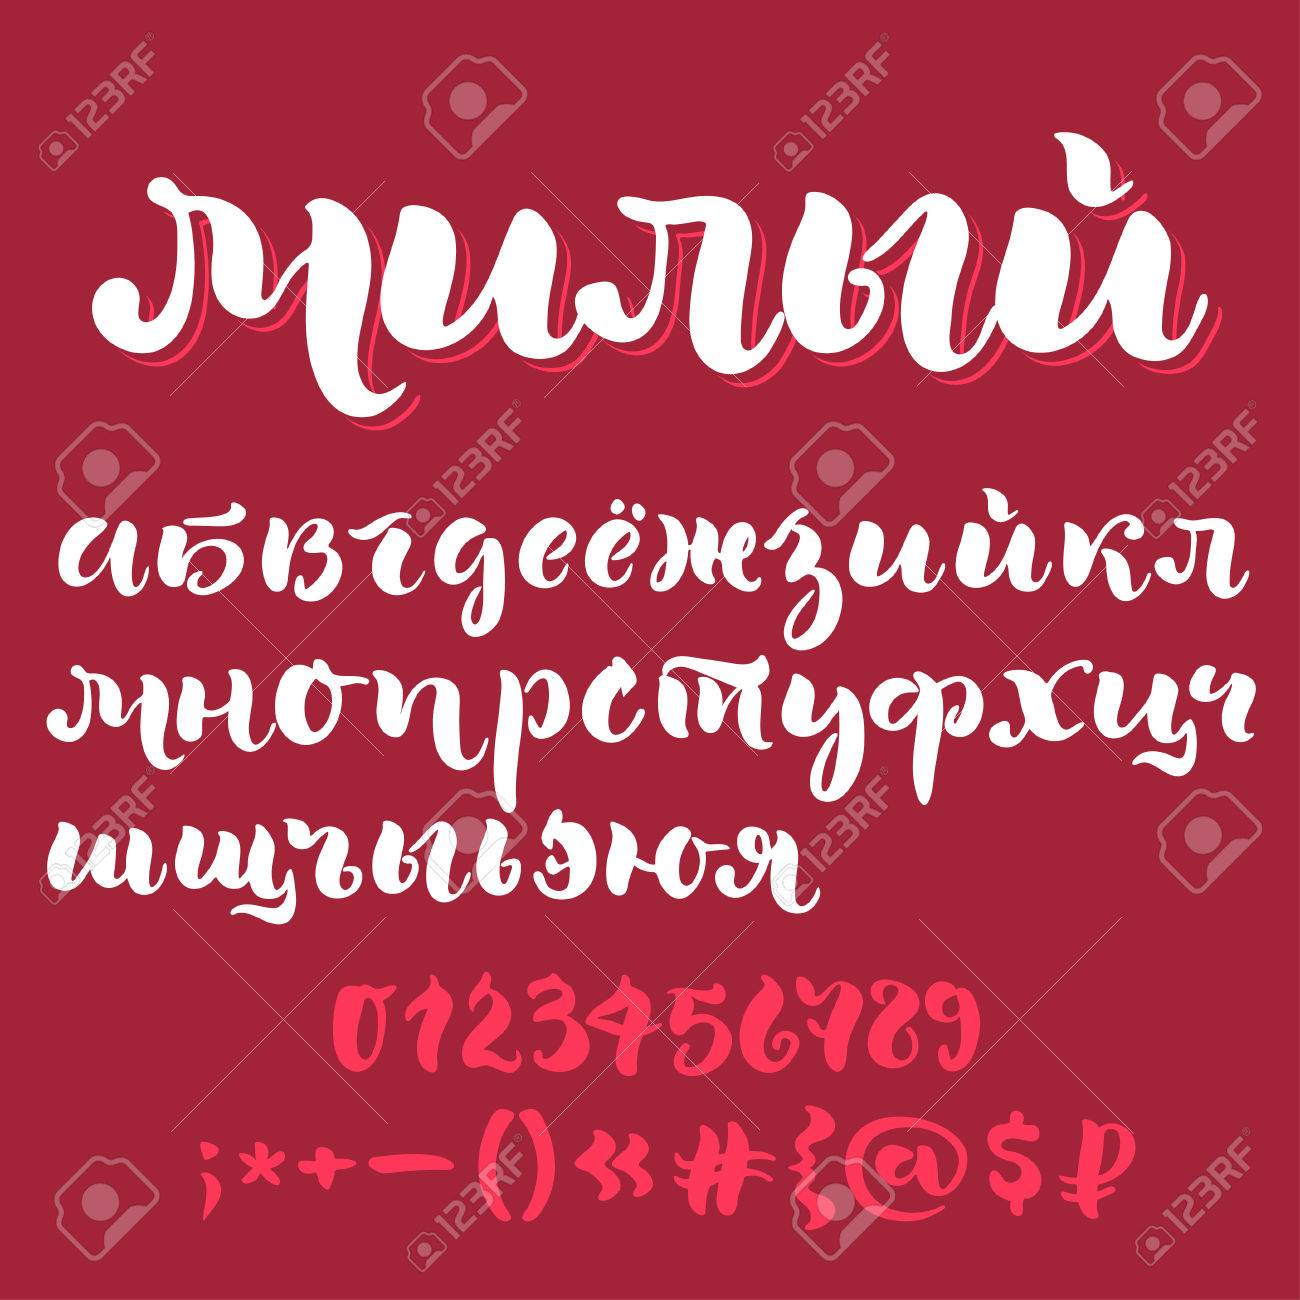 b1b934e5985 Brush script cyrillic alphabet. Title in Russian means Honey. Lowercase  letters, numbers and